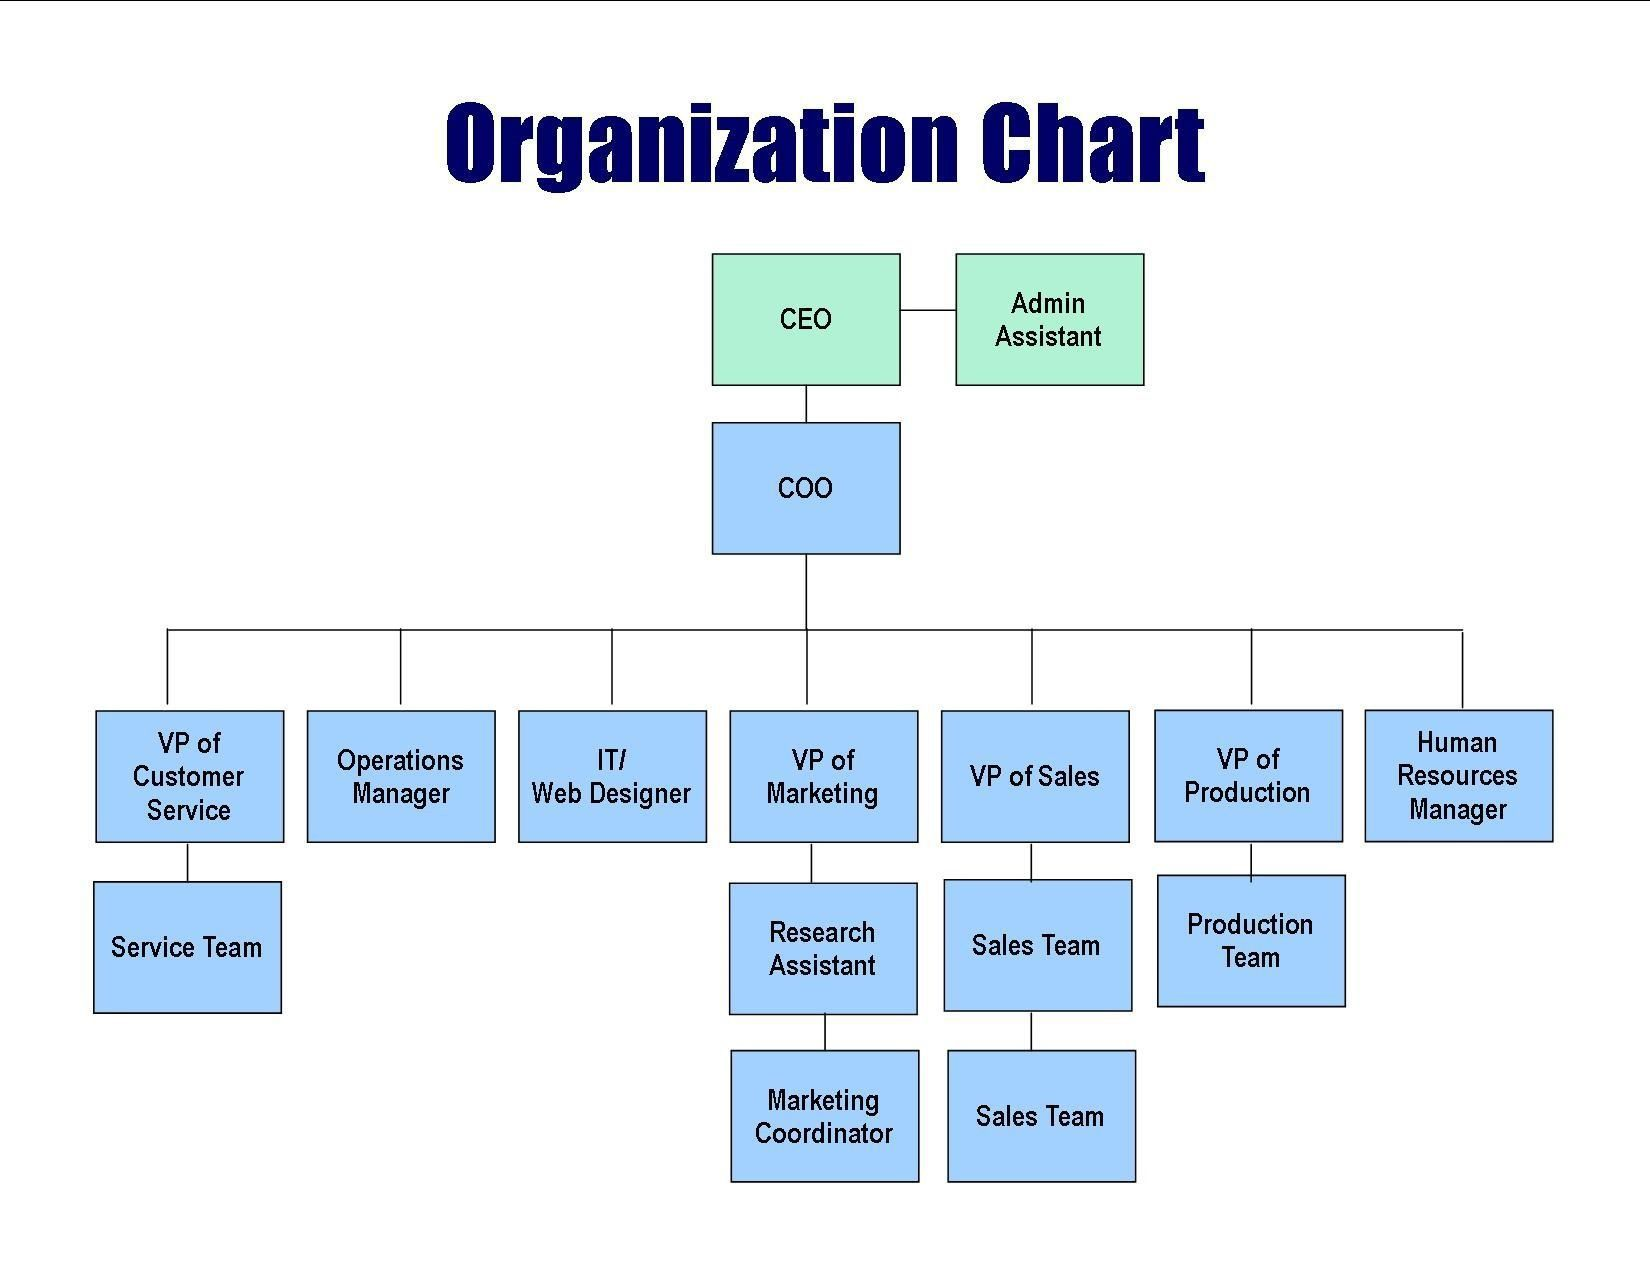 000 Magnificent Microsoft Organizational Chart Template Word Photo  Free 2013 HierarchyFull